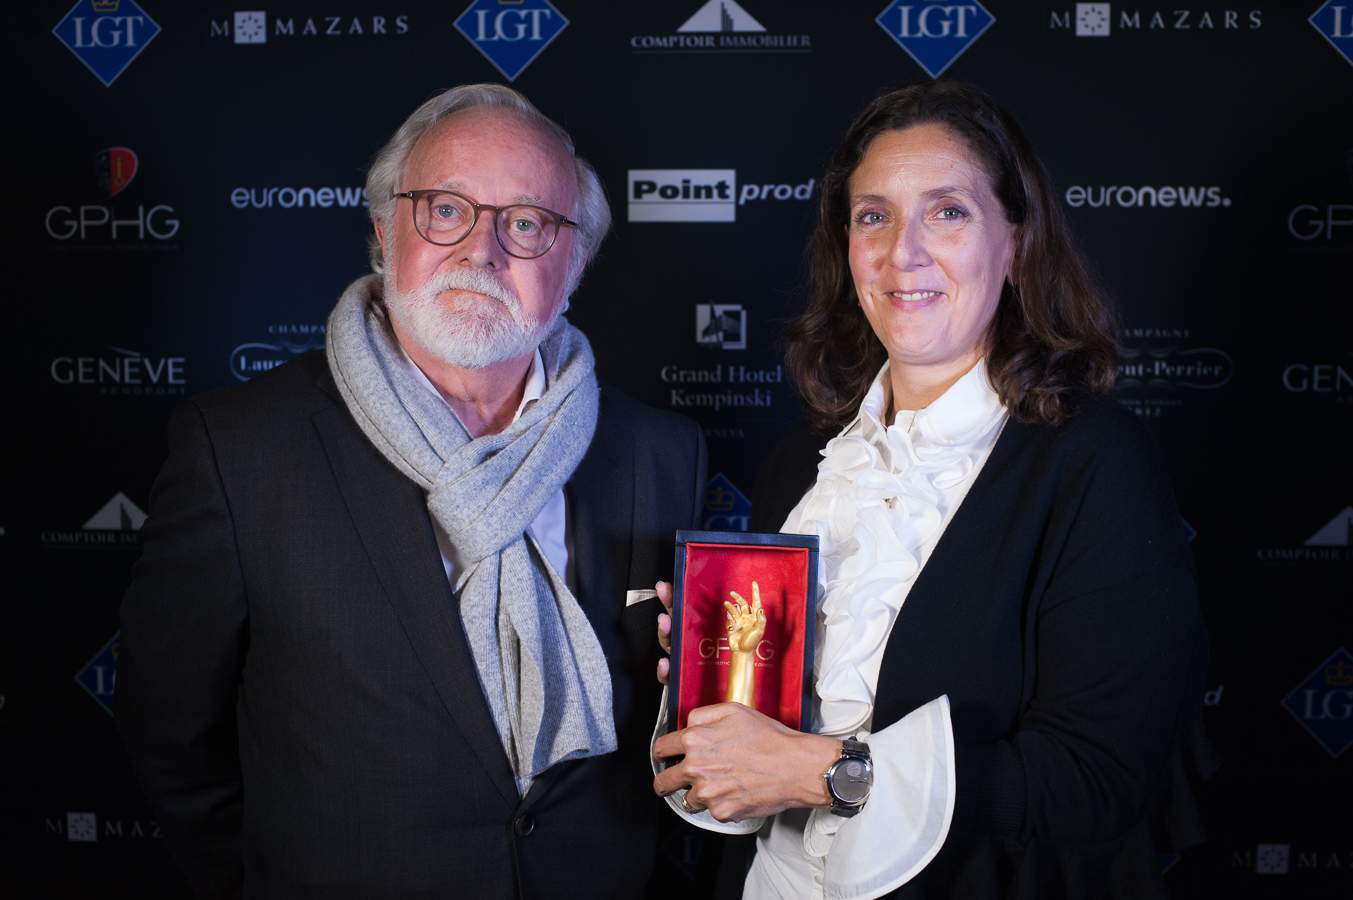 Laurent Ferrier, Founder and Vanessa Monestel, CEO Laurent Ferrier, winners of the Men's Complication Watch Prize 2018